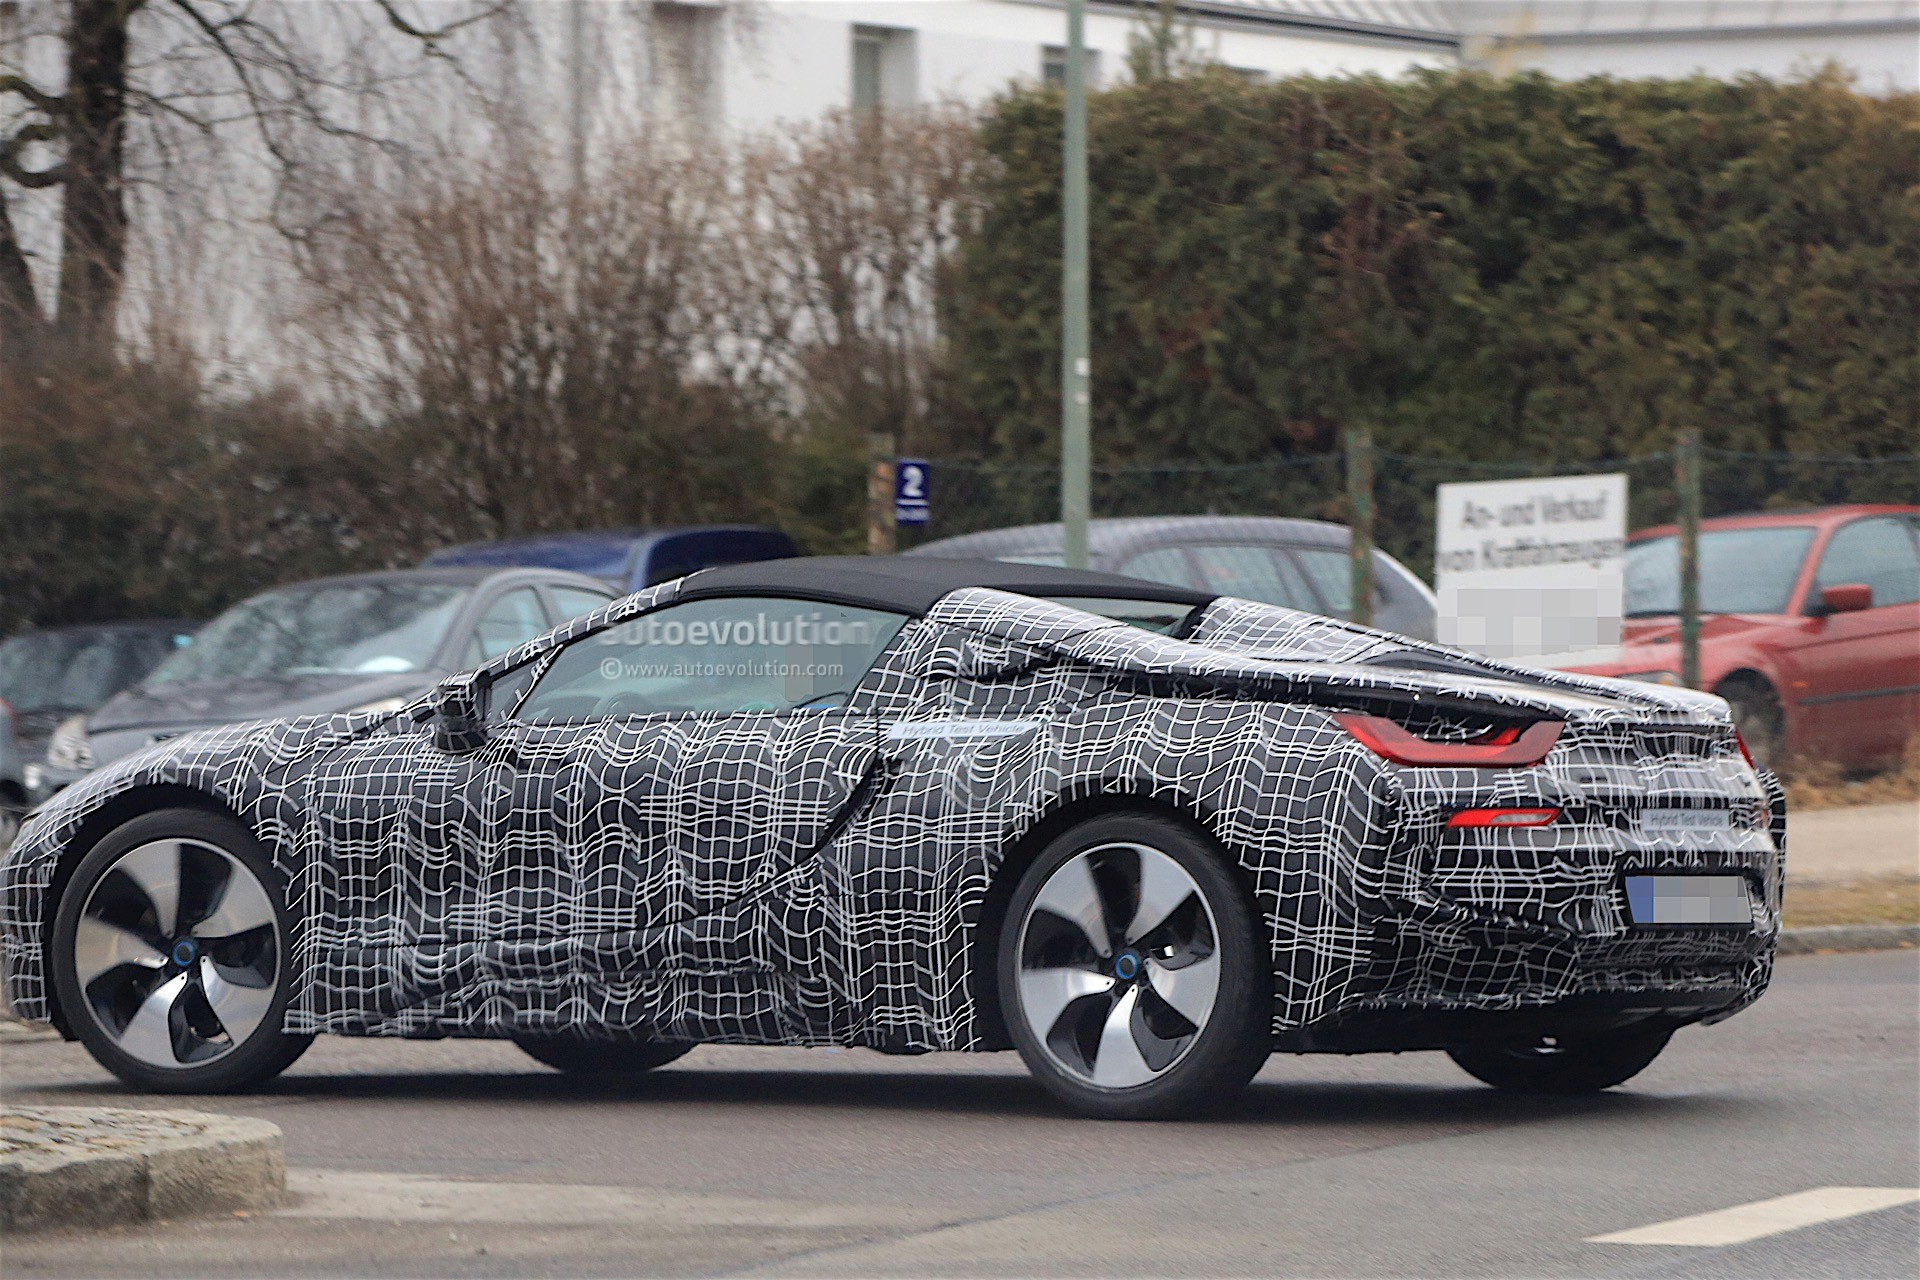 2018 Bmw I8 Spyder Prototype Spied Everything Looks Ready For